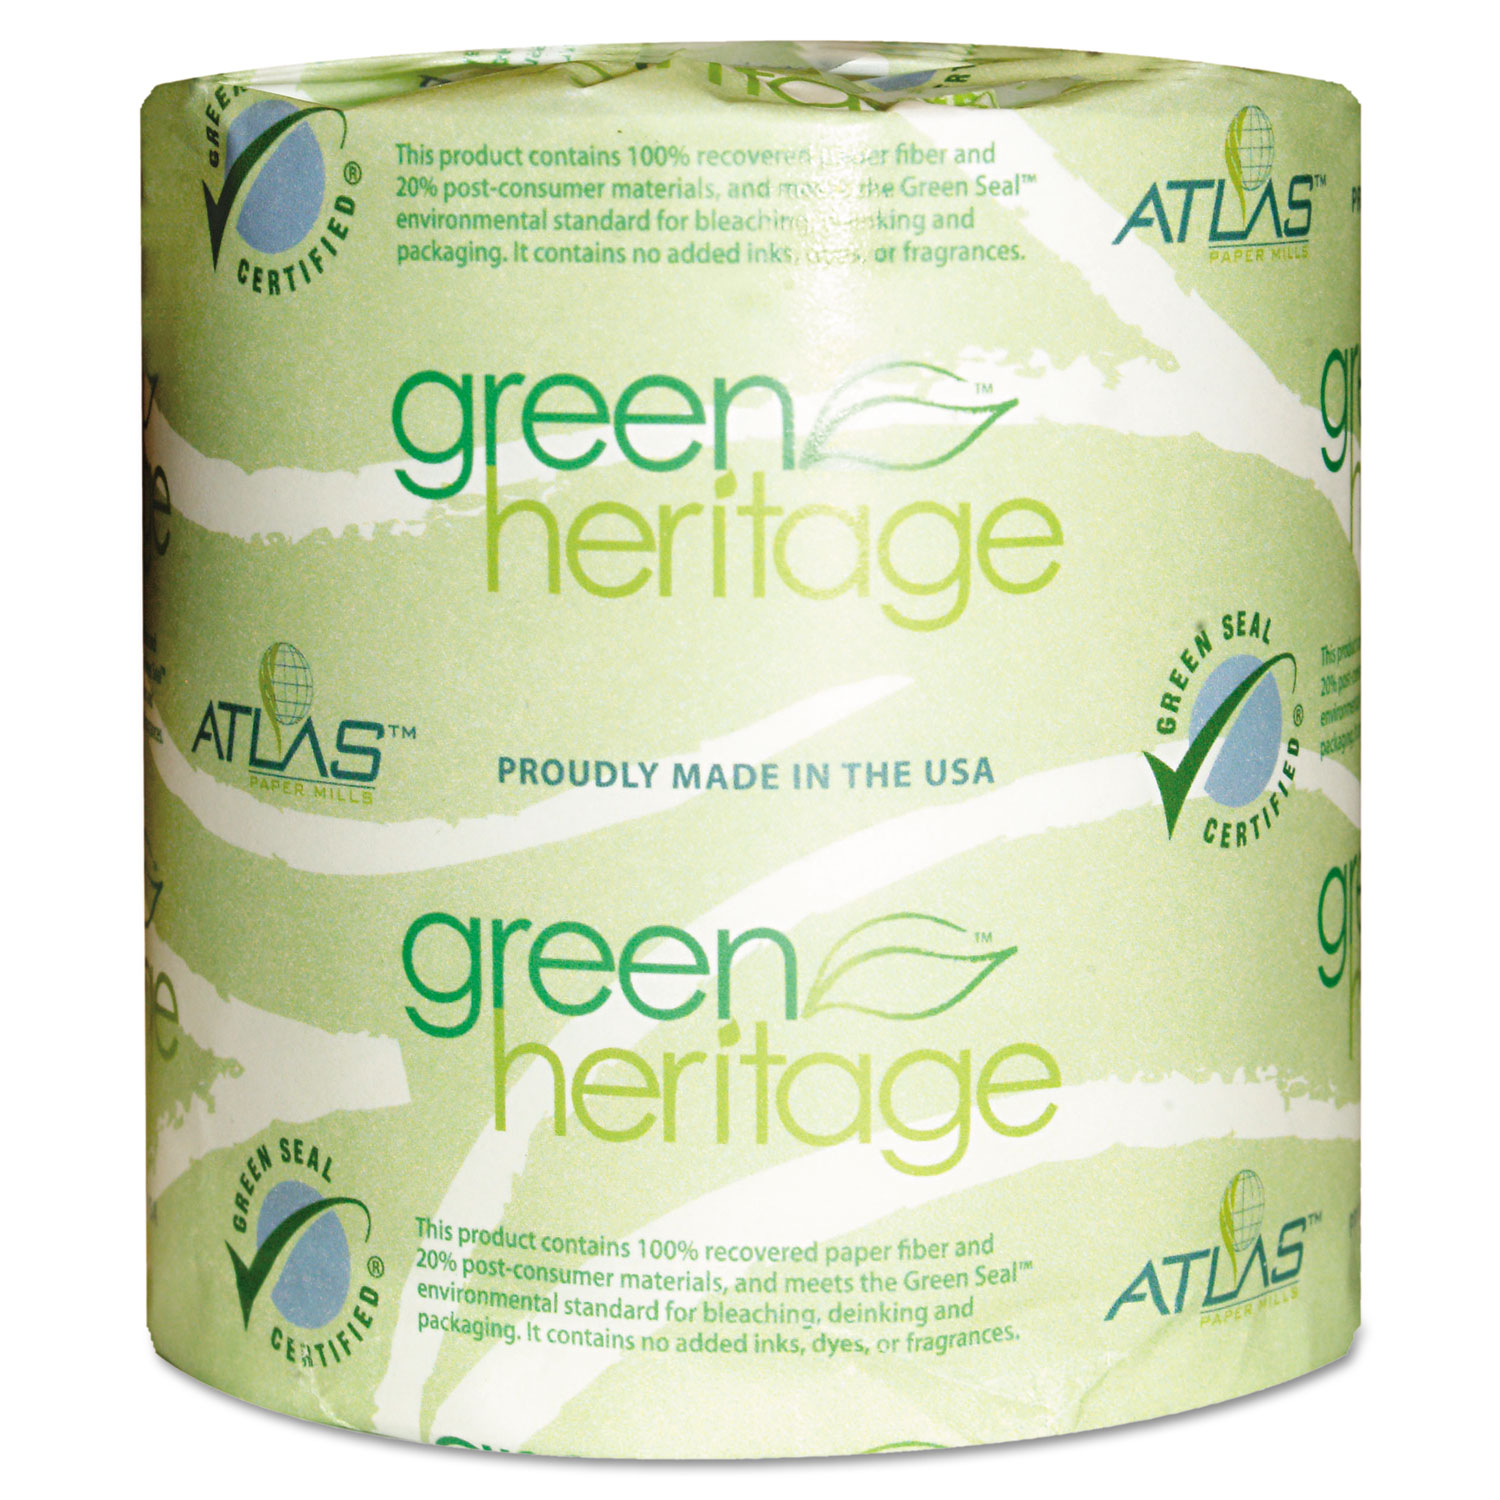 Green Heritage Toilet Tissue, 4.4 x 3.8 Sheets, 1-Ply, 1000/Roll, 96 Roll/CT